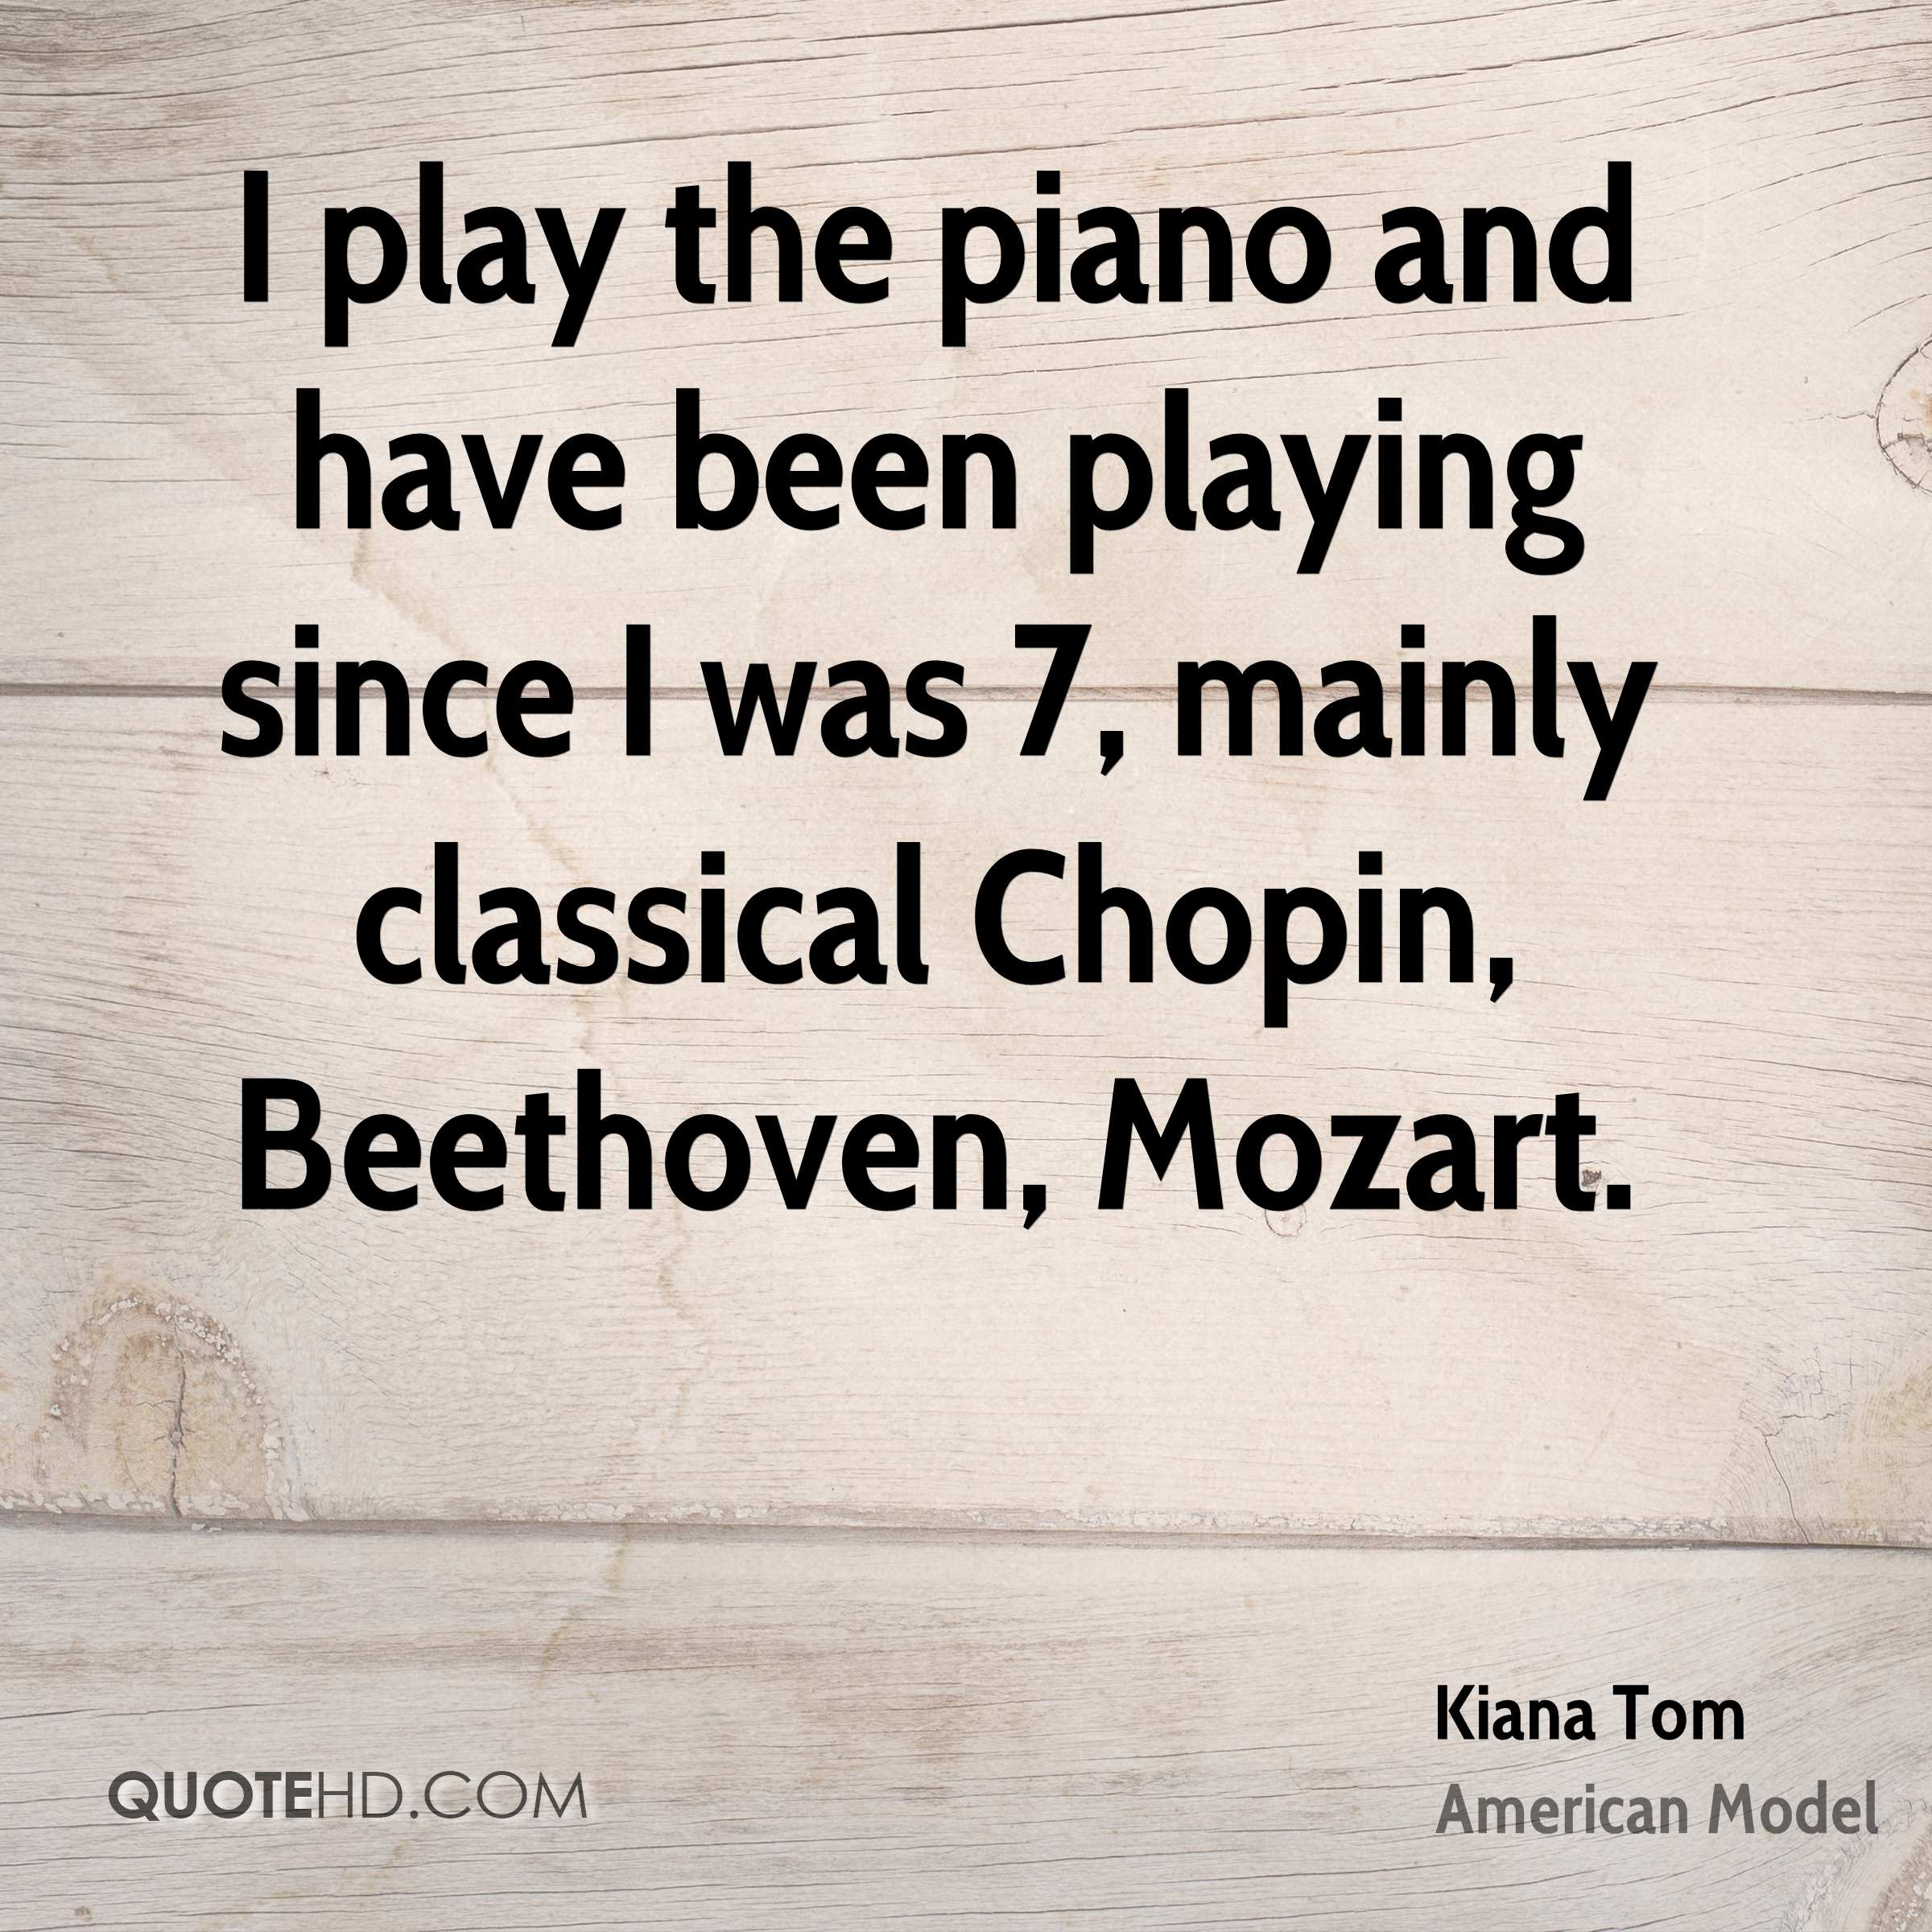 Quotes About Play Kiana Tom Quotes  Quotehd